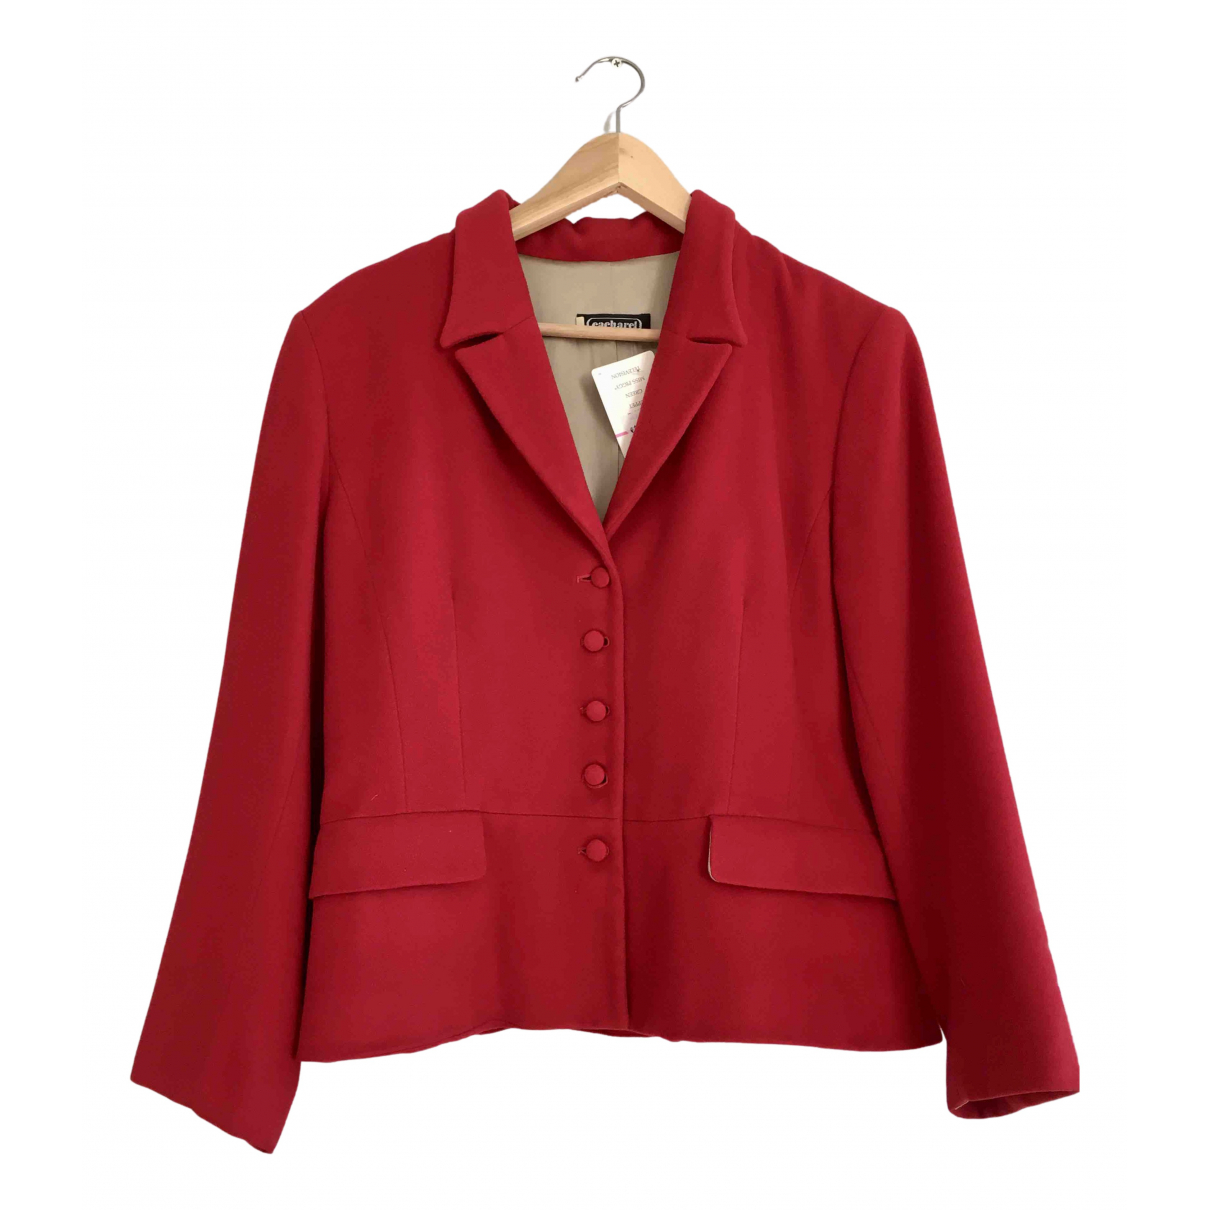 Cacharel N Red Cashmere jacket for Women 44 FR